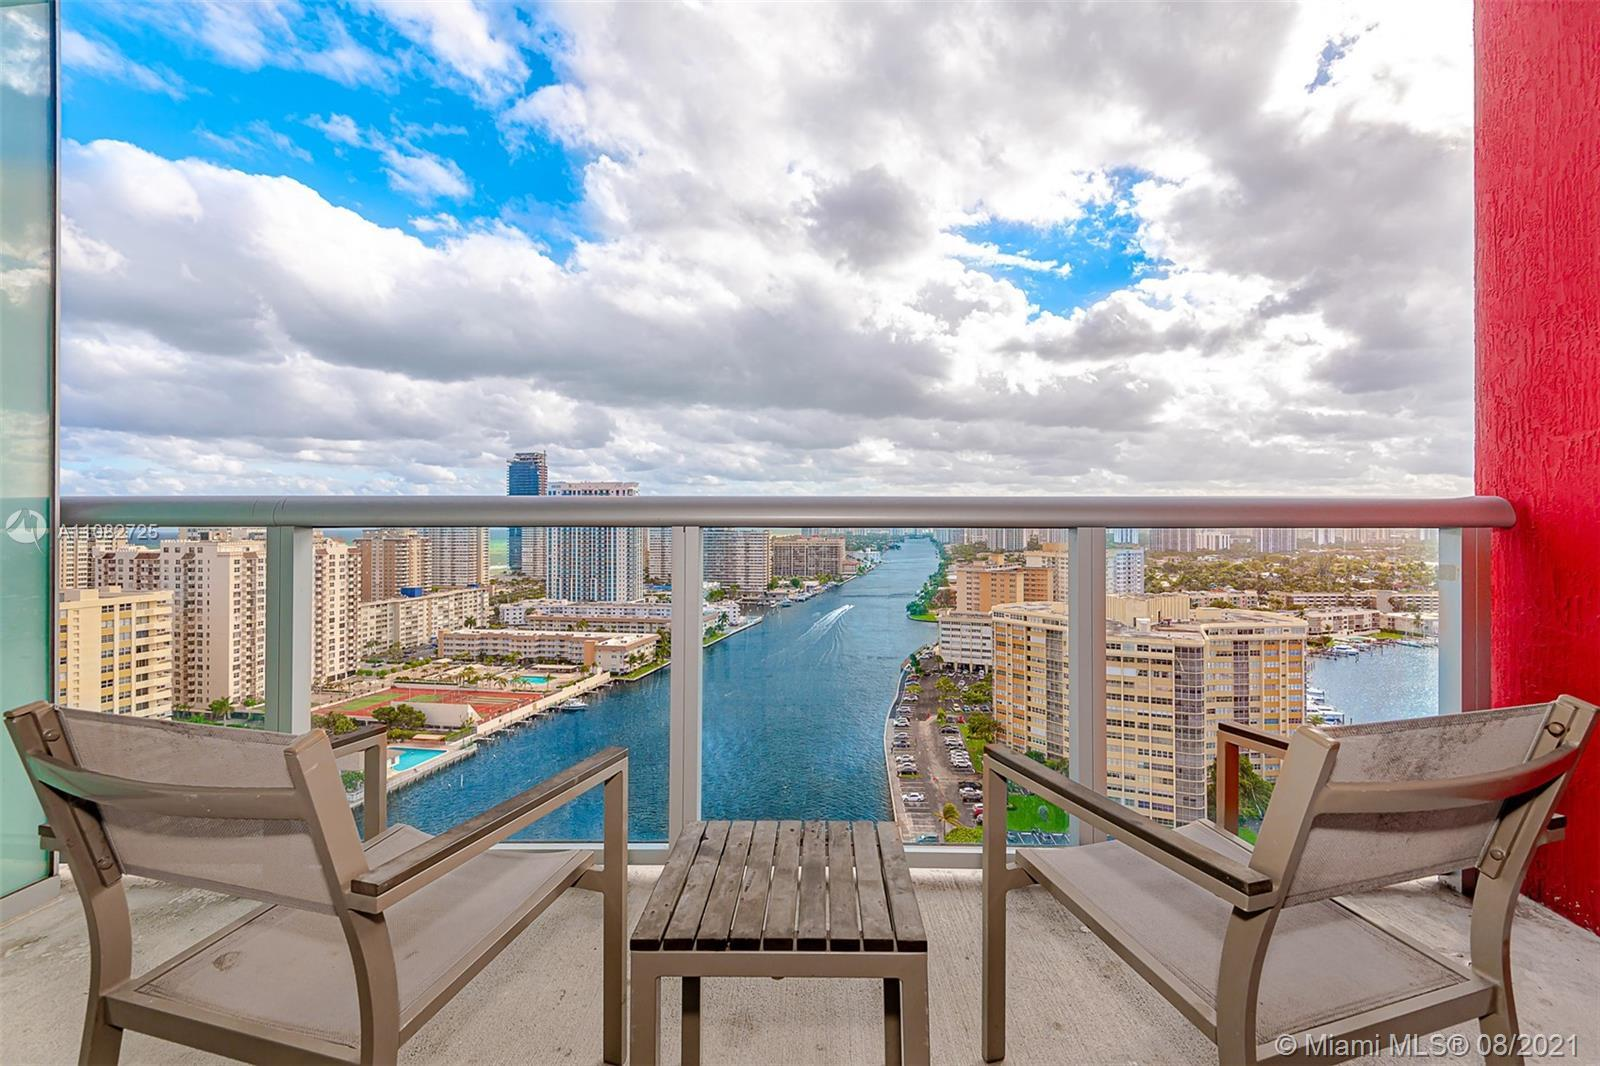 Amazing Apartment 2 Bedroom and 2 Bathroom Unit with South Views to Ocean and Intracoastal in a Full